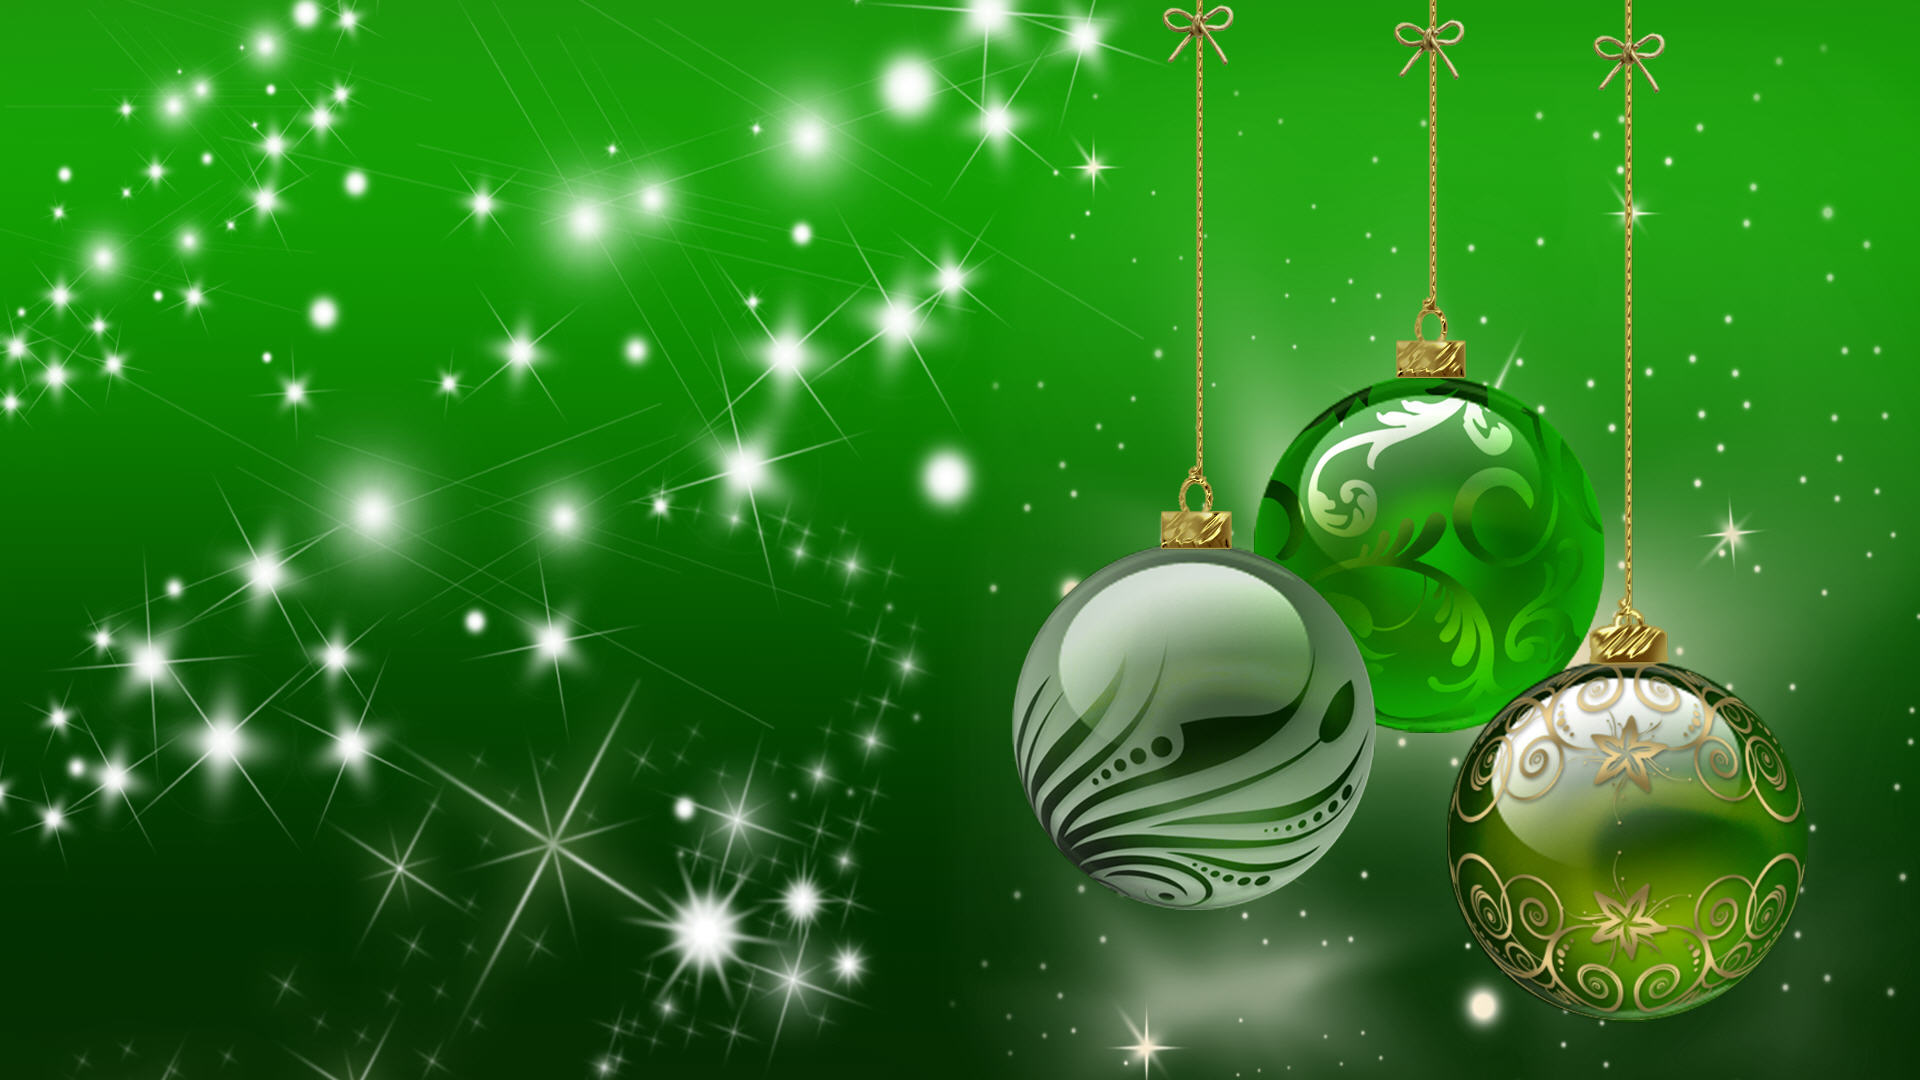 Christmas holiday wallpaper backgrounds   SF Wallpaper 1920x1080